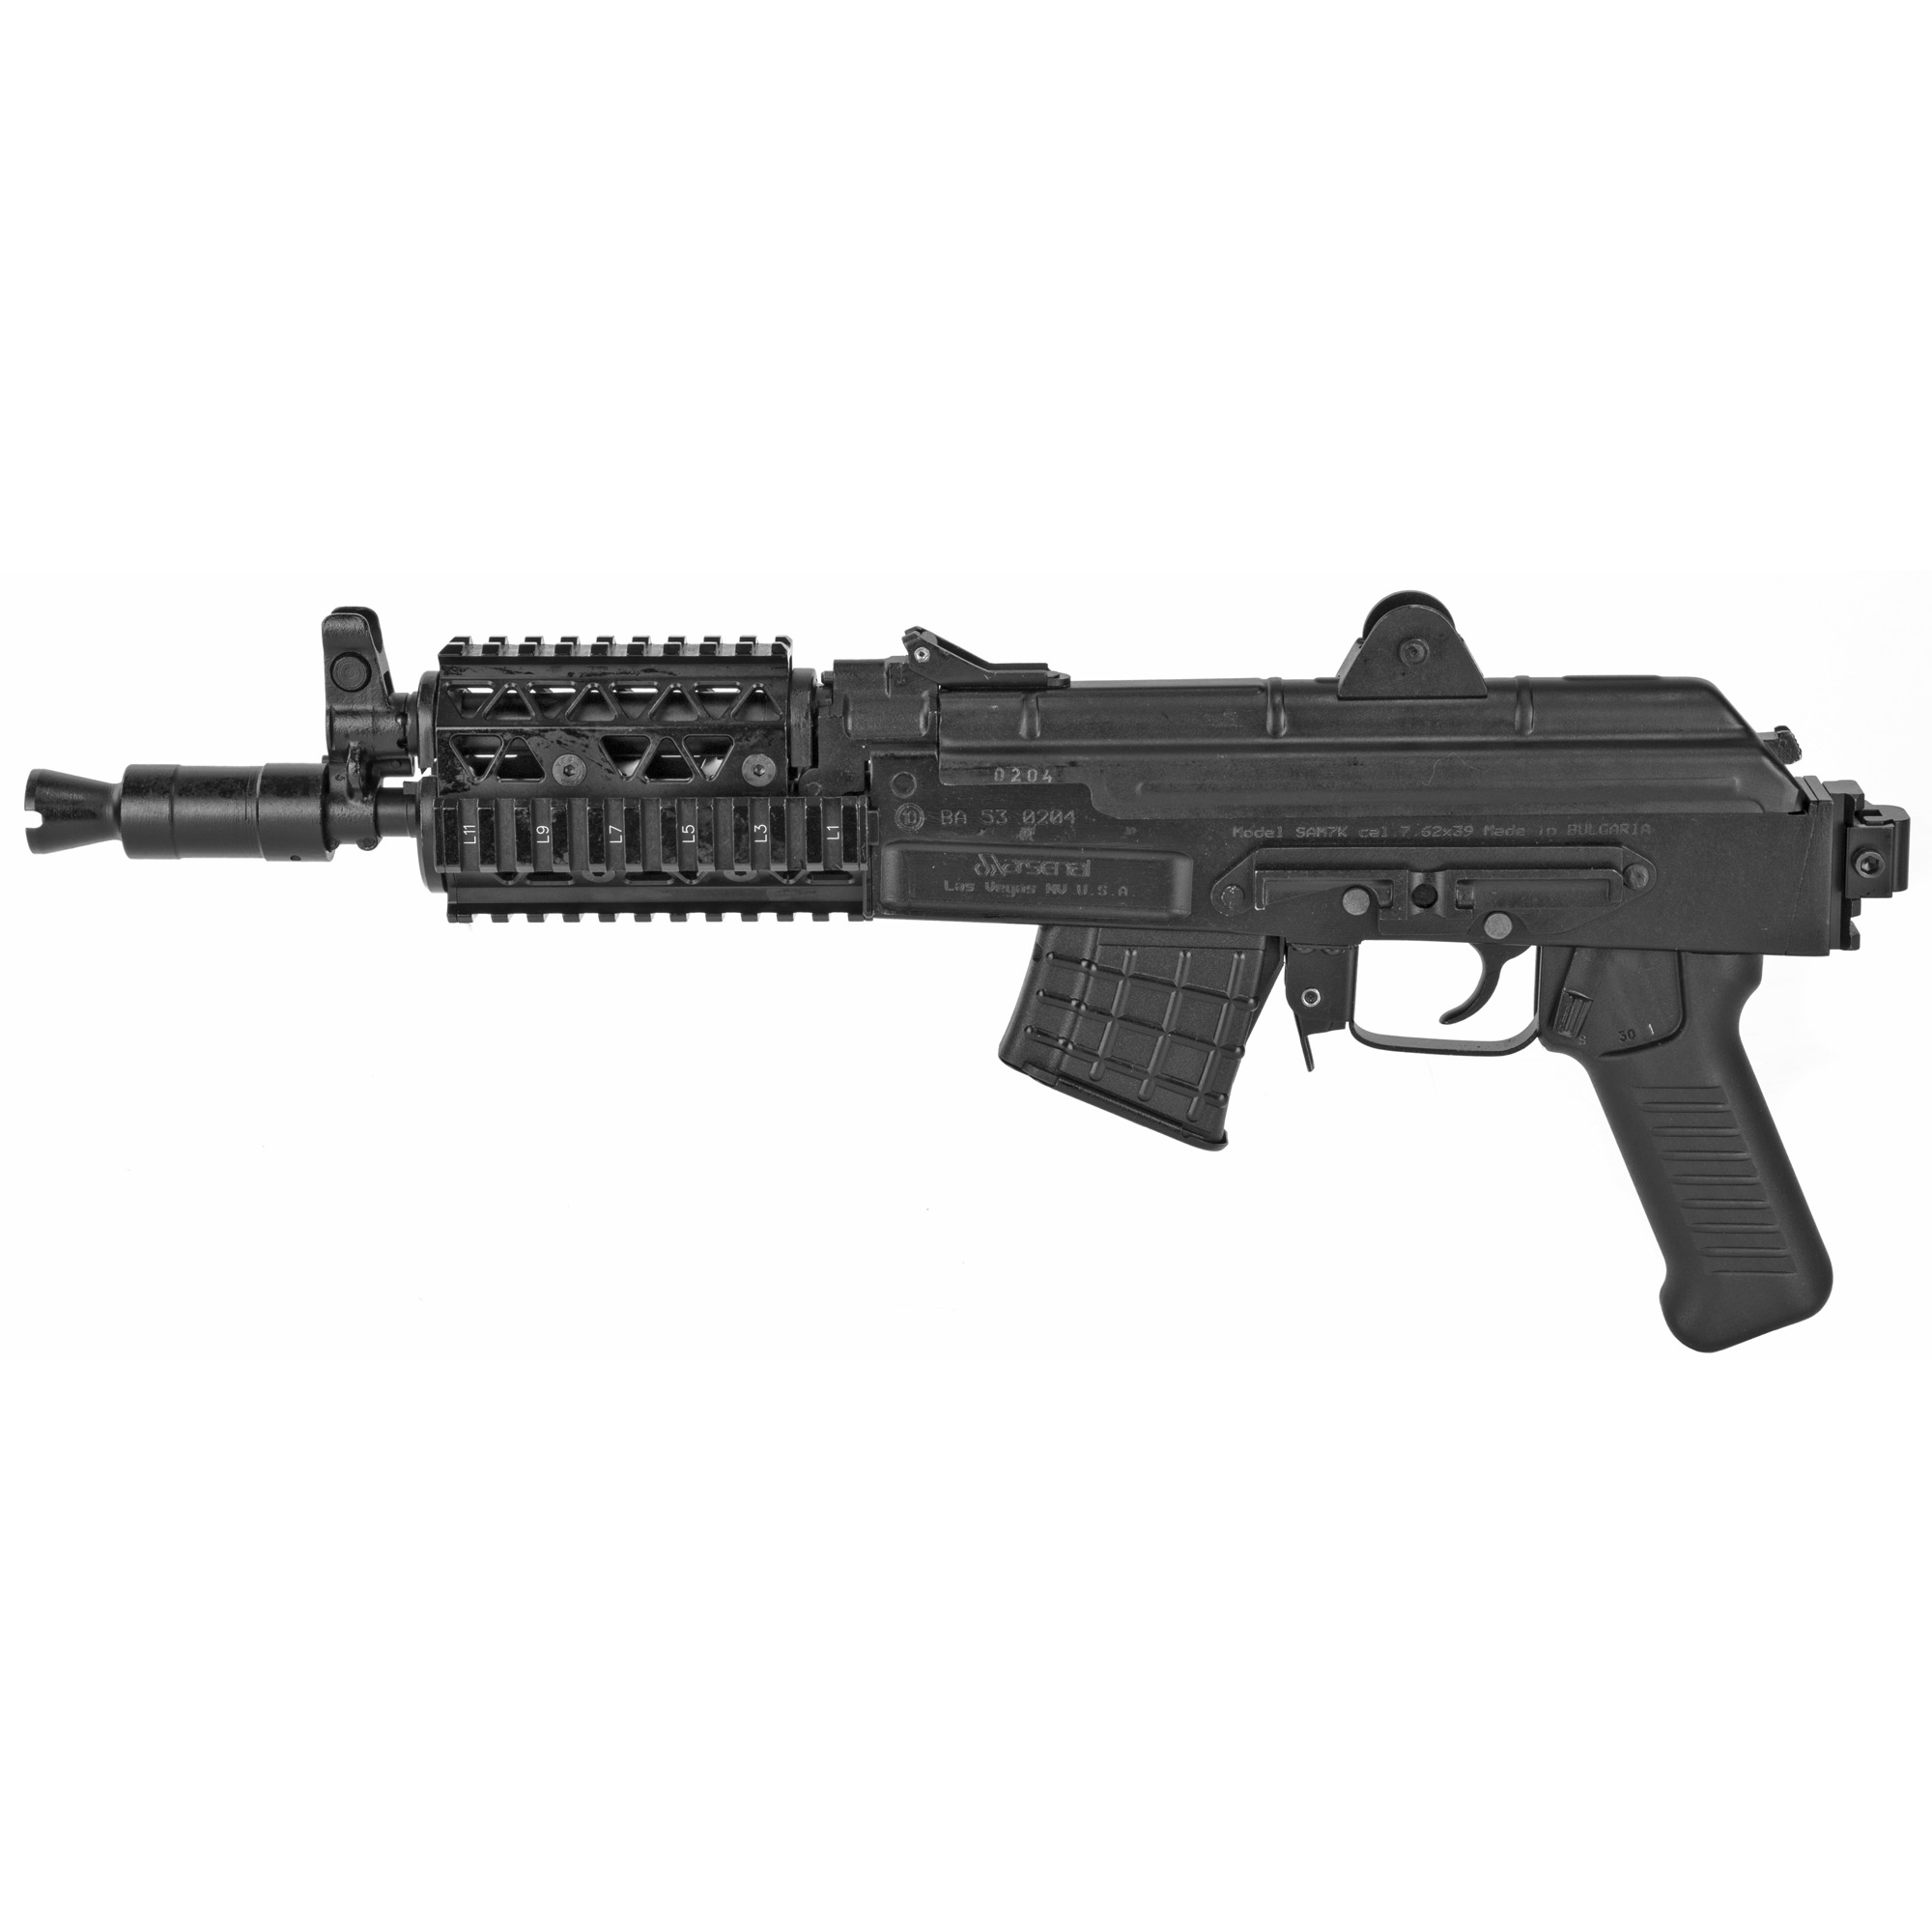 Arsenal Sam7k Pstl 1913 762x39 10.5""